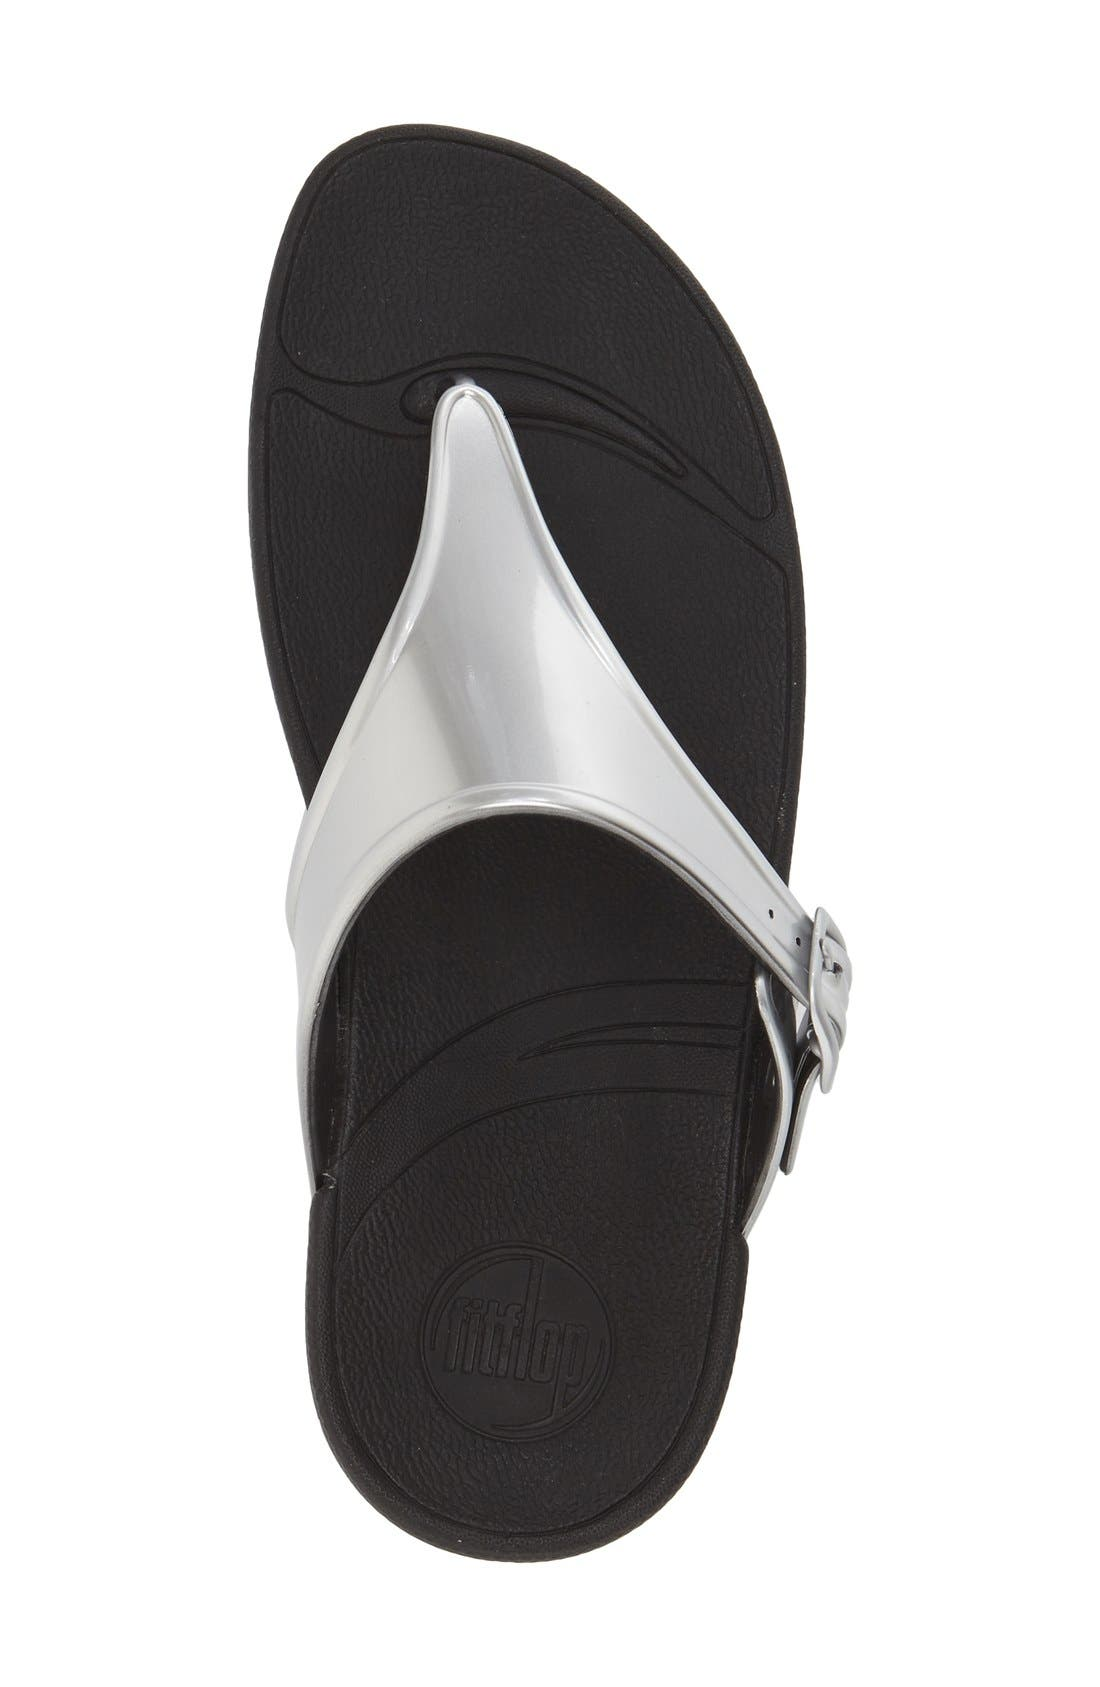 Alternate Image 3  - FitFlop™ 'Superjelly' Metallic Flip Flop (Women)